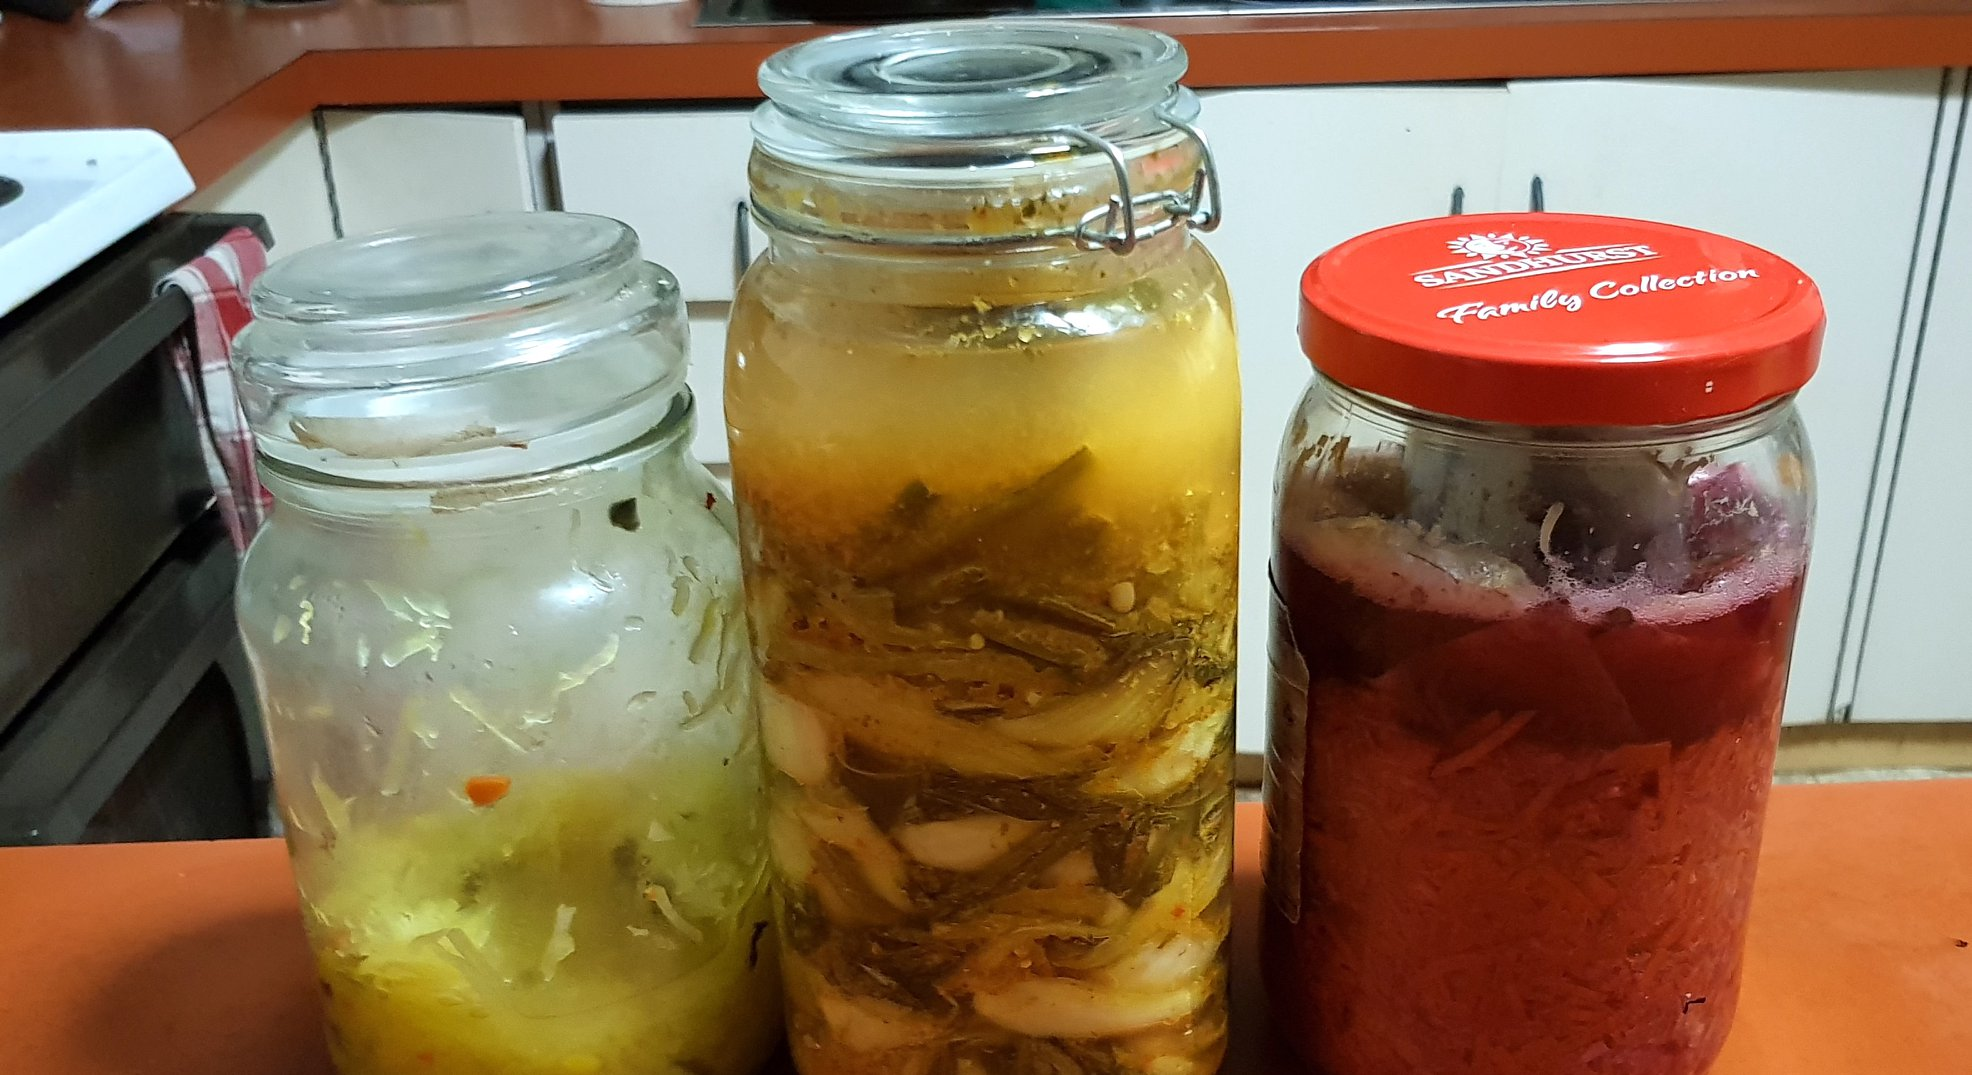 Pickling and fermentation skill share